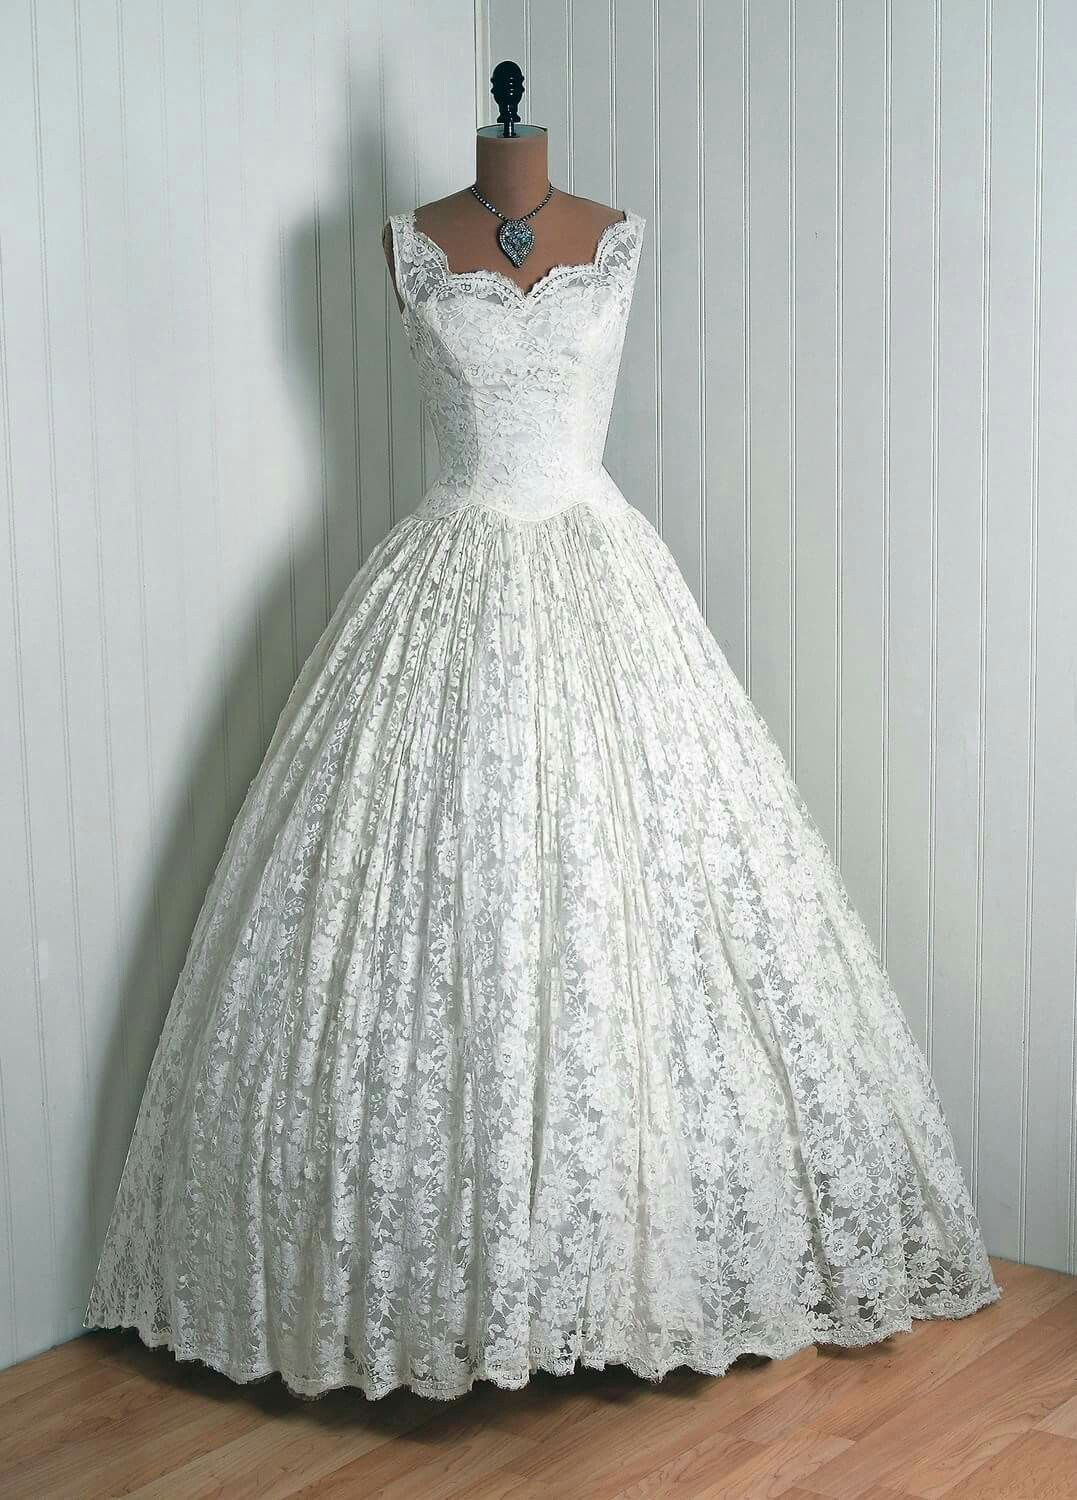 Wedding dress from the 1950s. (via timeless vixen) Yay or nay?